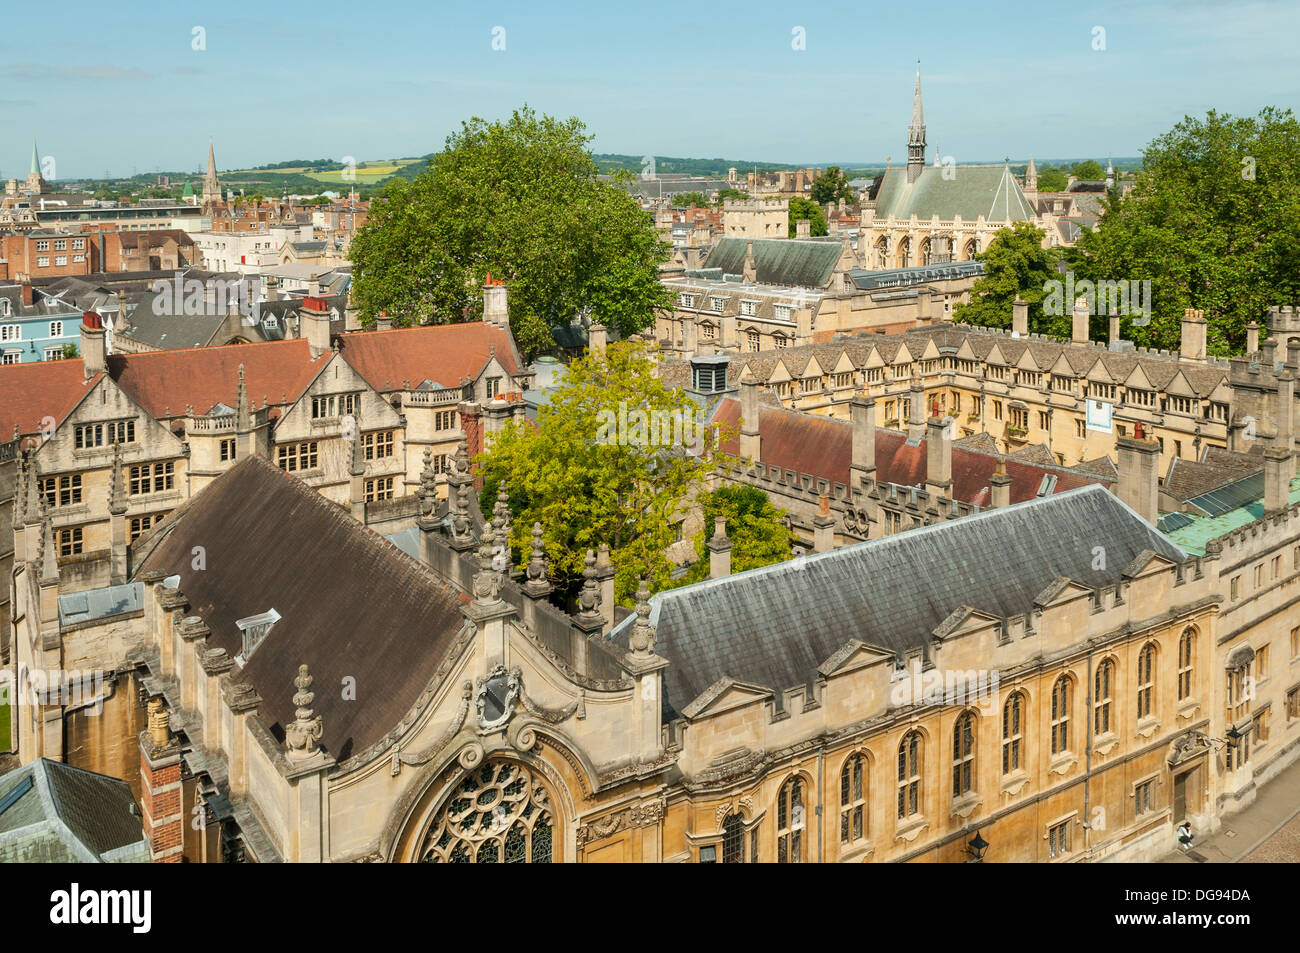 Brasenose College from St Mary's Tower, Oxford, Oxfordshire, England - Stock Image